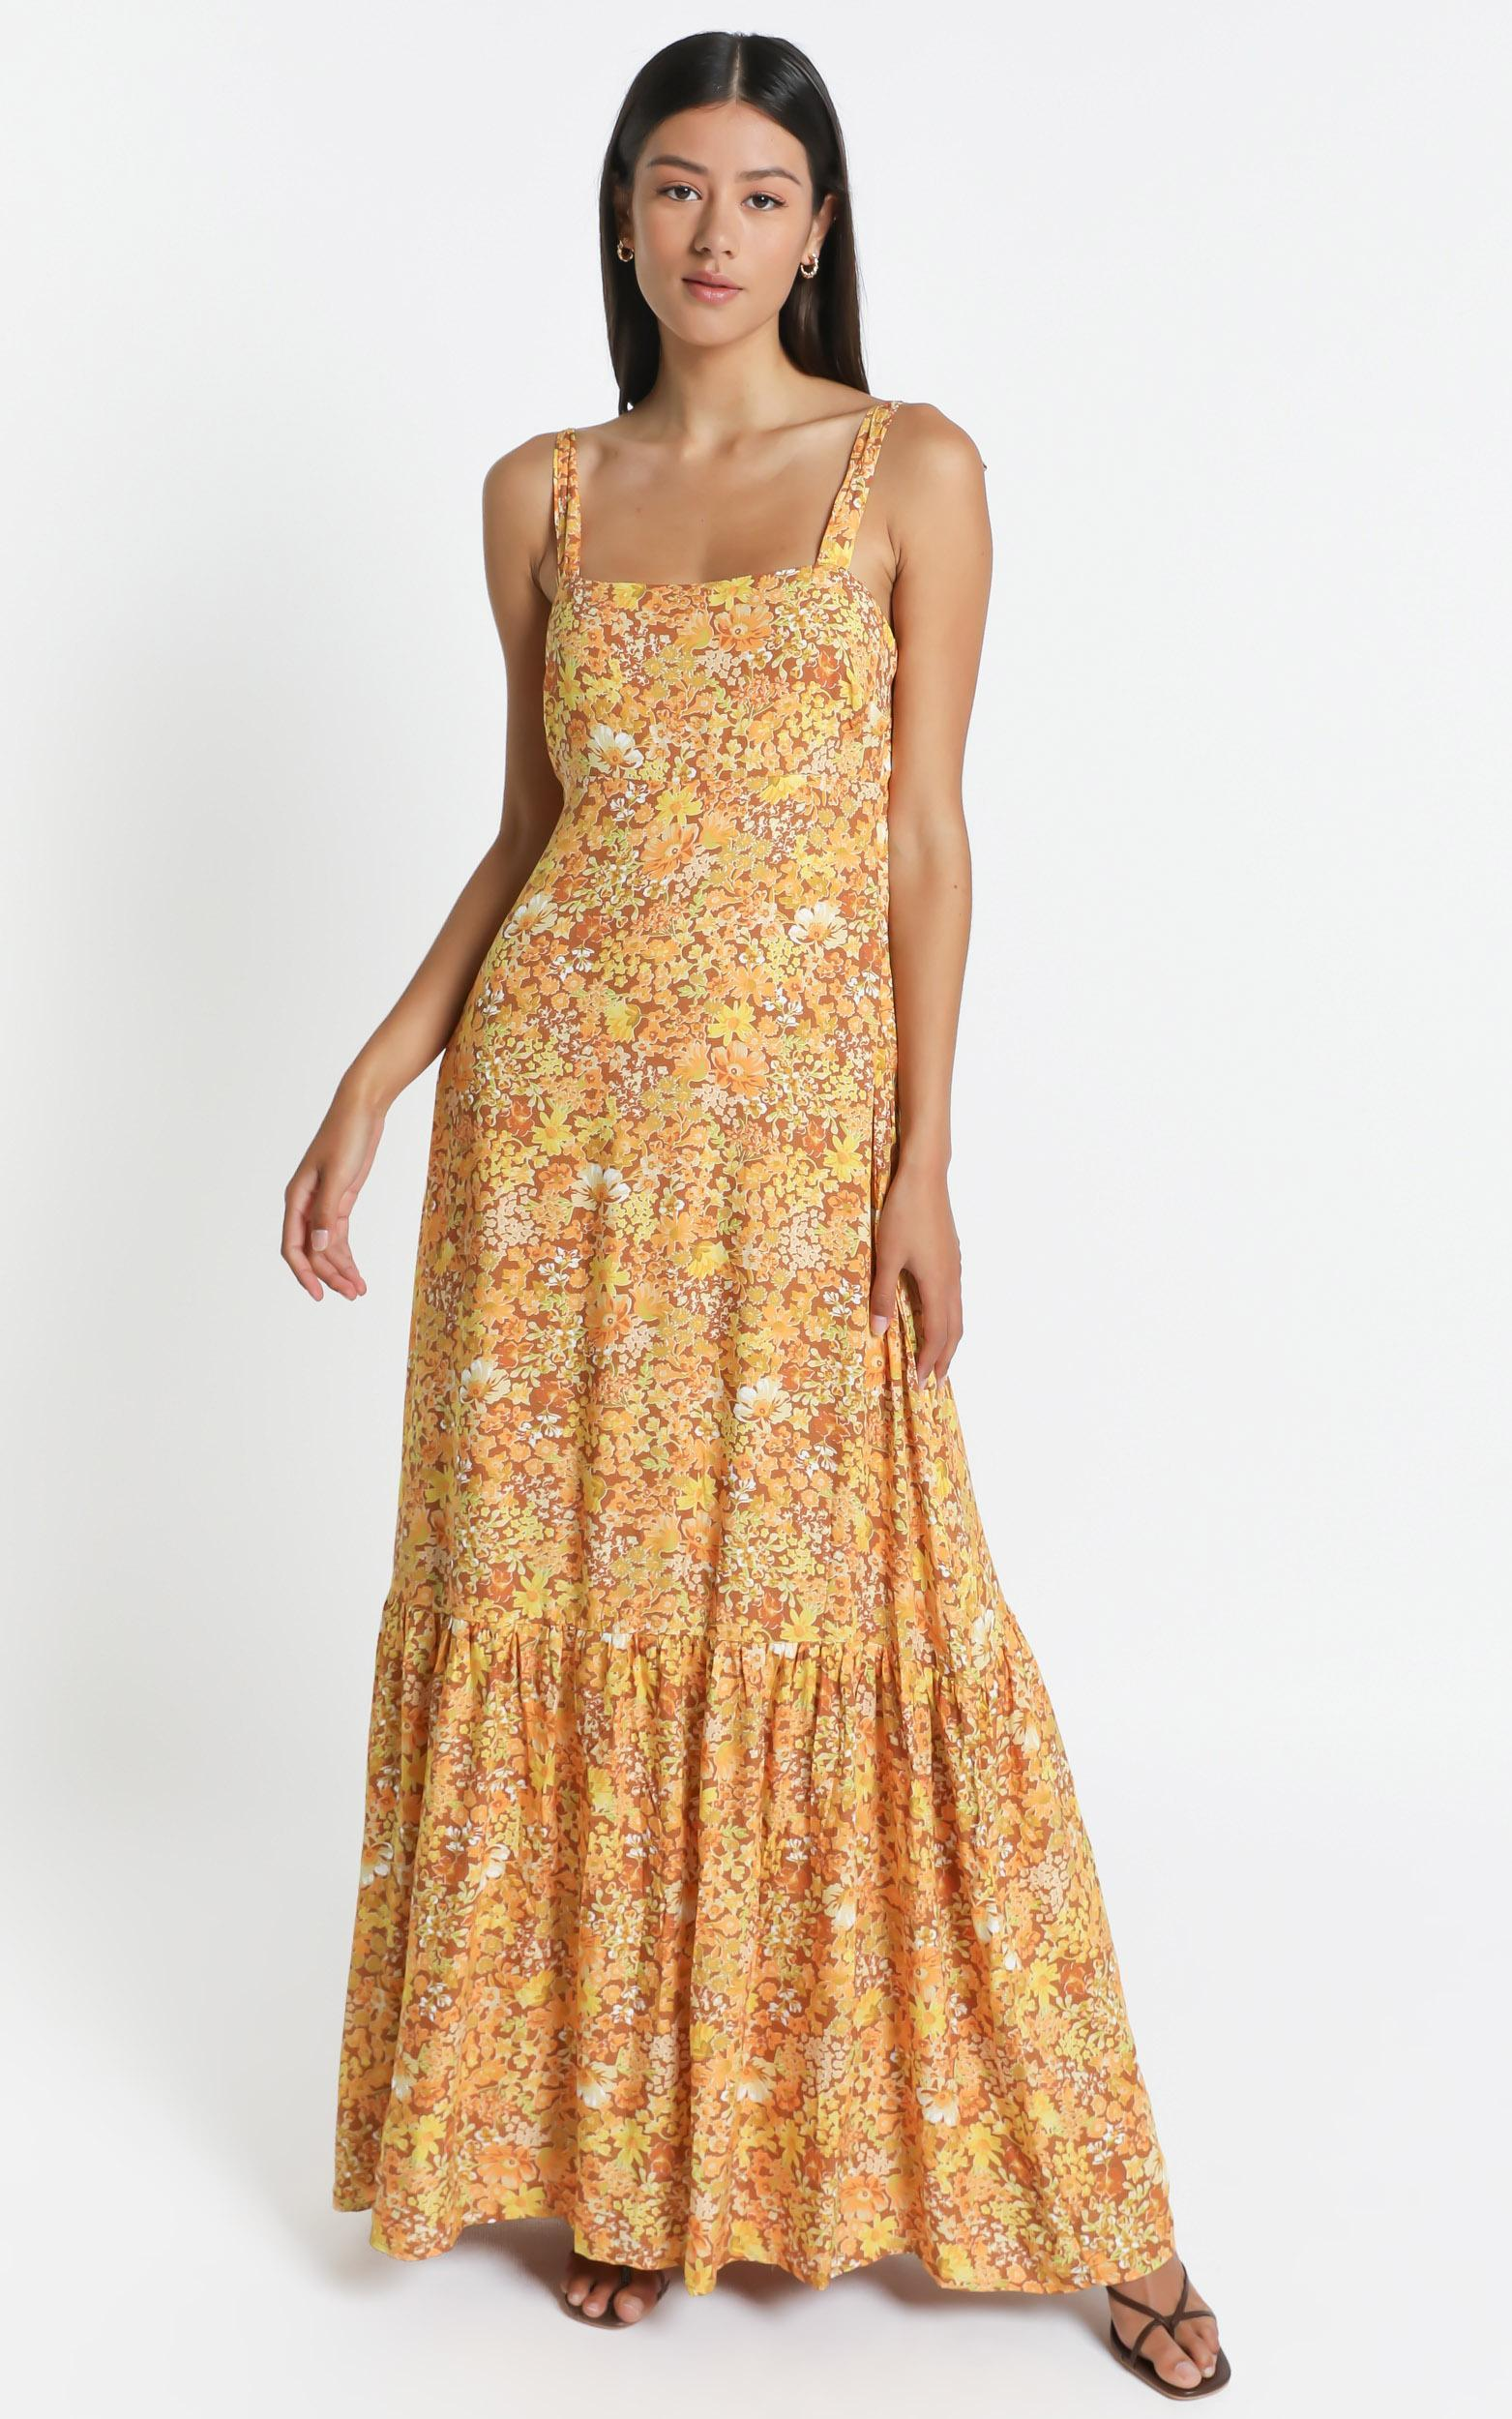 Honor Dress in Rustic Floral - 6 (XS), Mustard, hi-res image number null